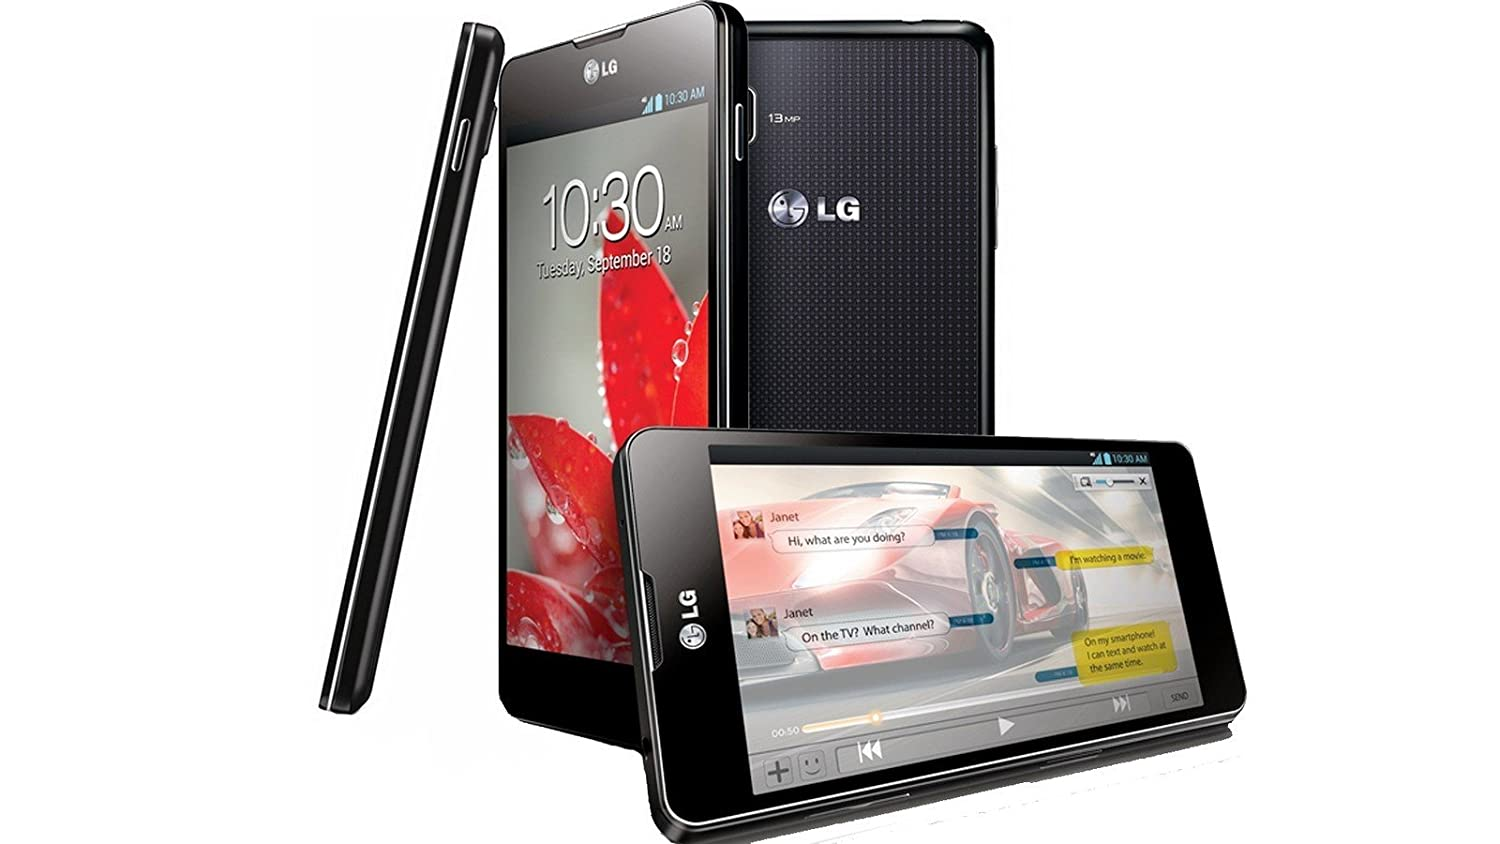 LG Optimus G smart[hone - Best Gadgets Outlet